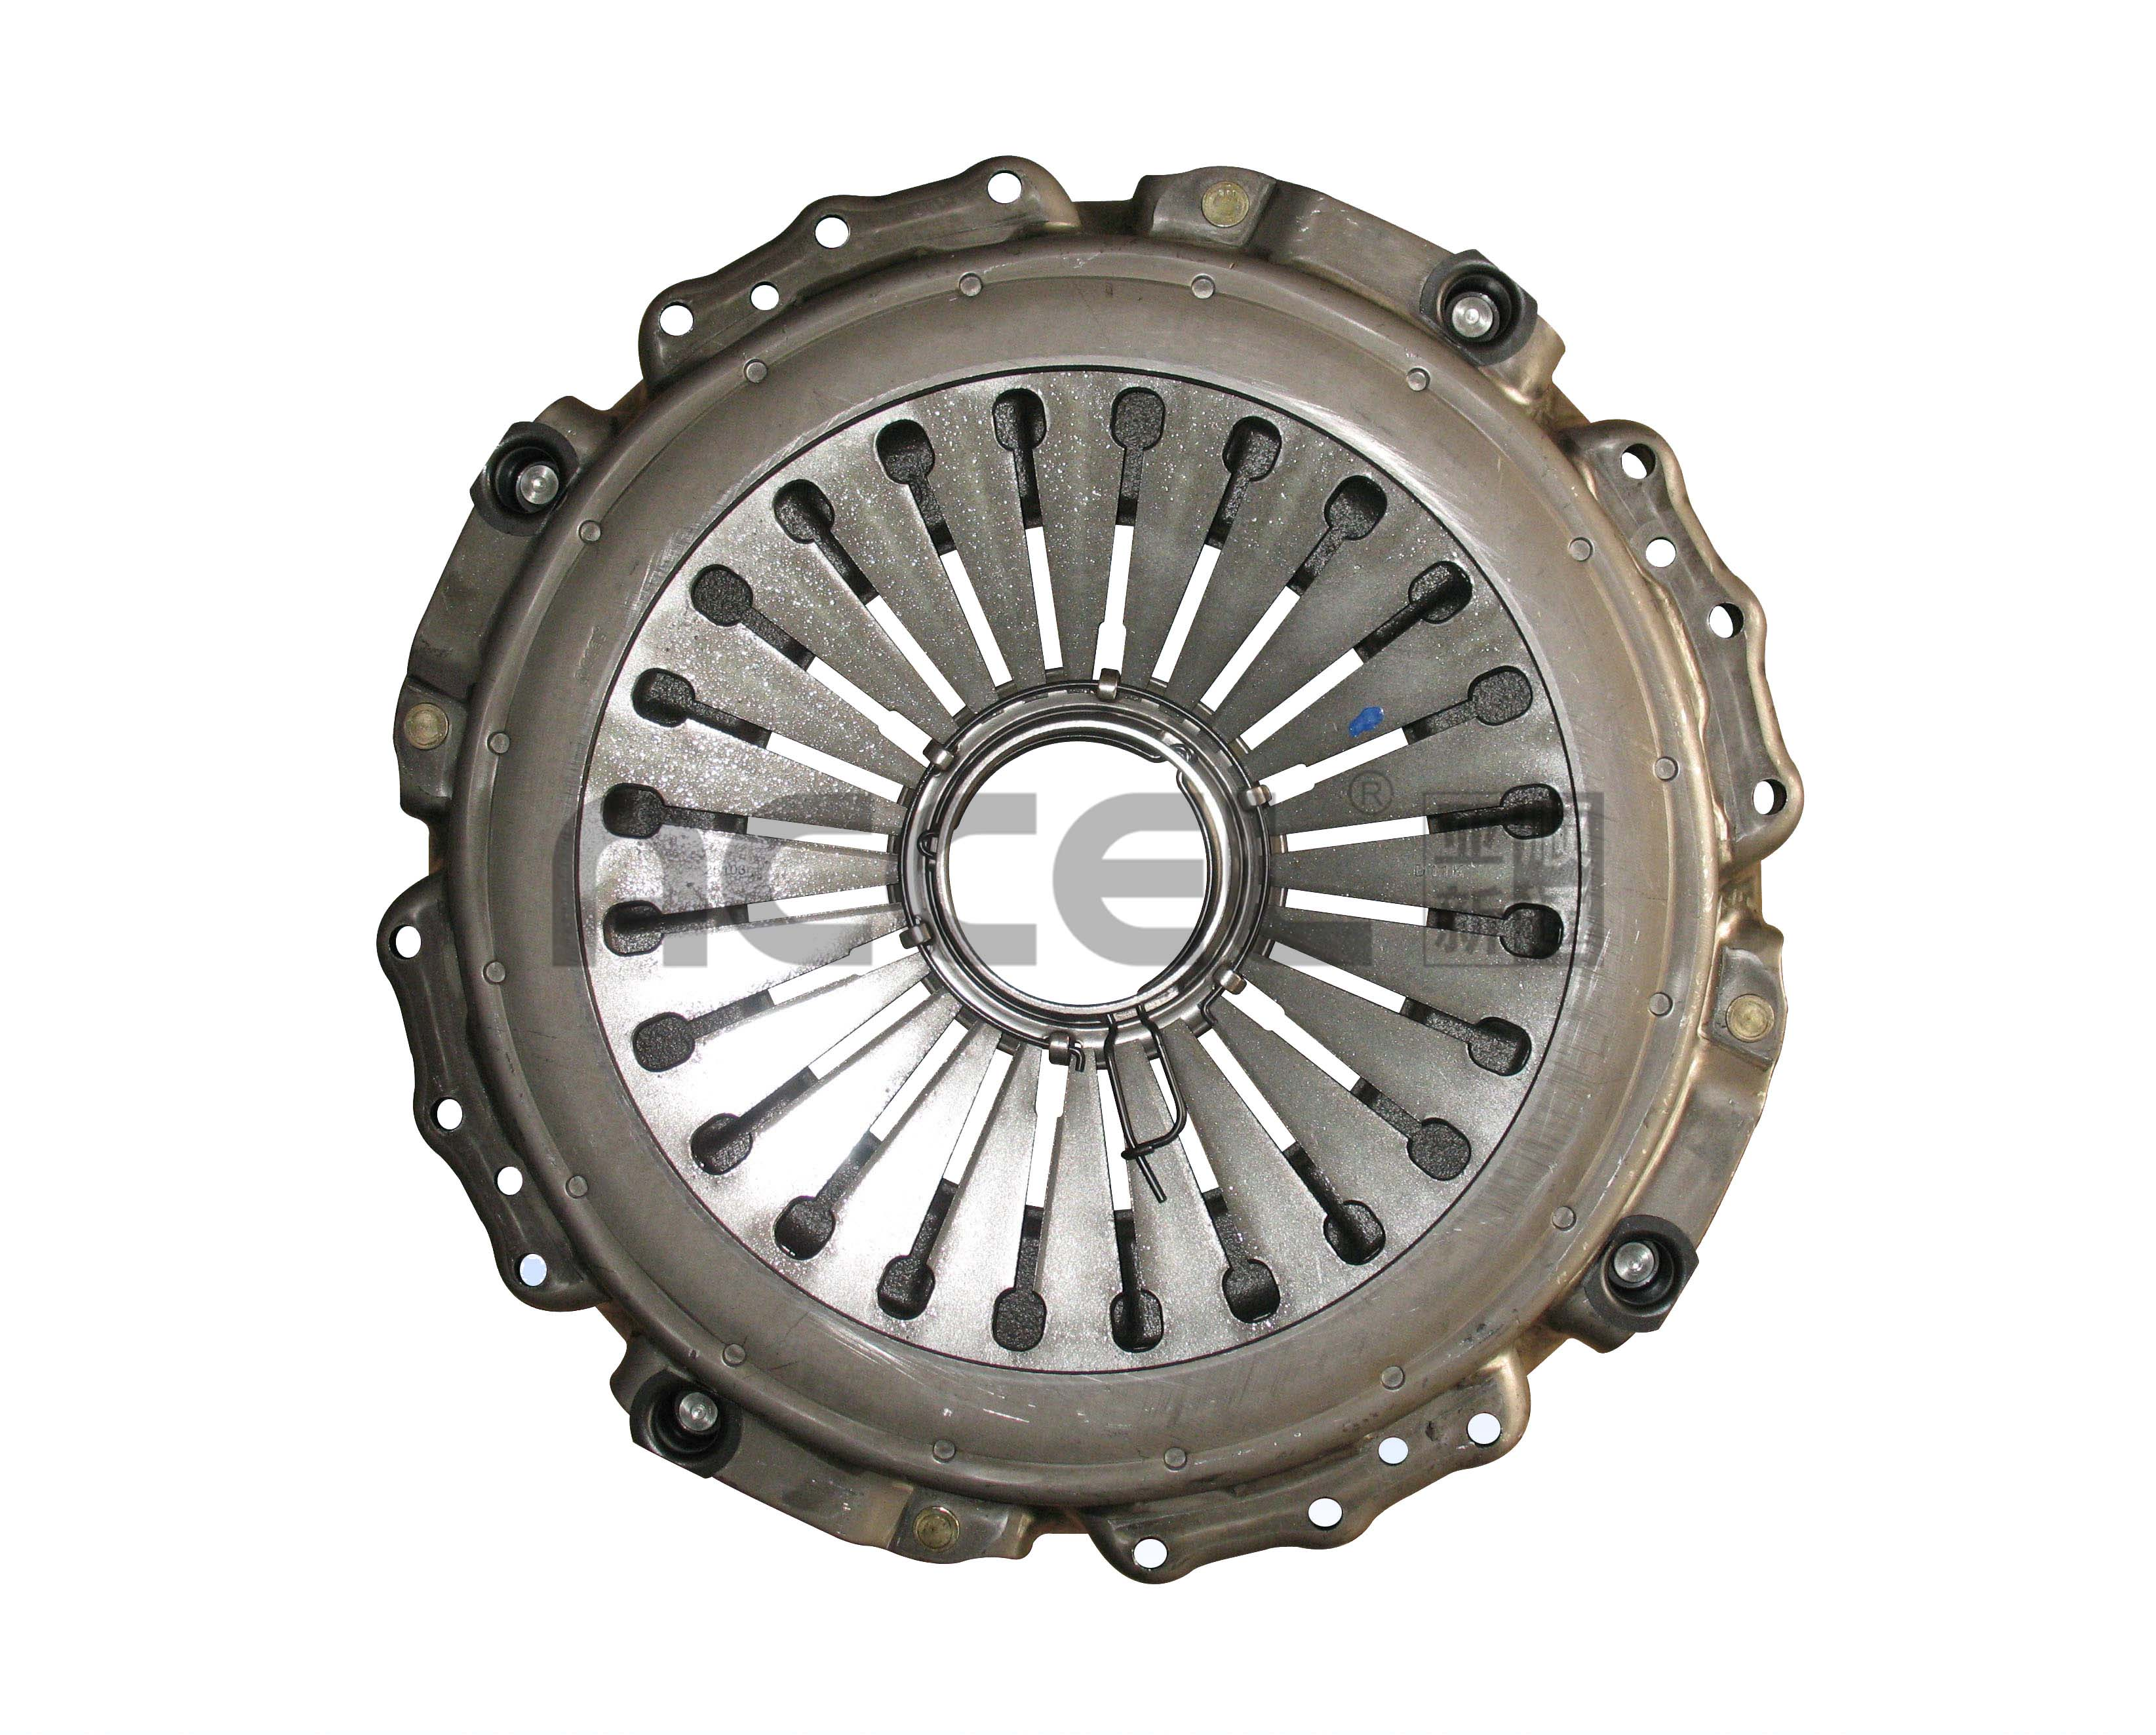 Clutch Cover/OE:3482 083 032/430*235*450/CMN-004/MAN/LY261/3482 083 038/81.30305.0158